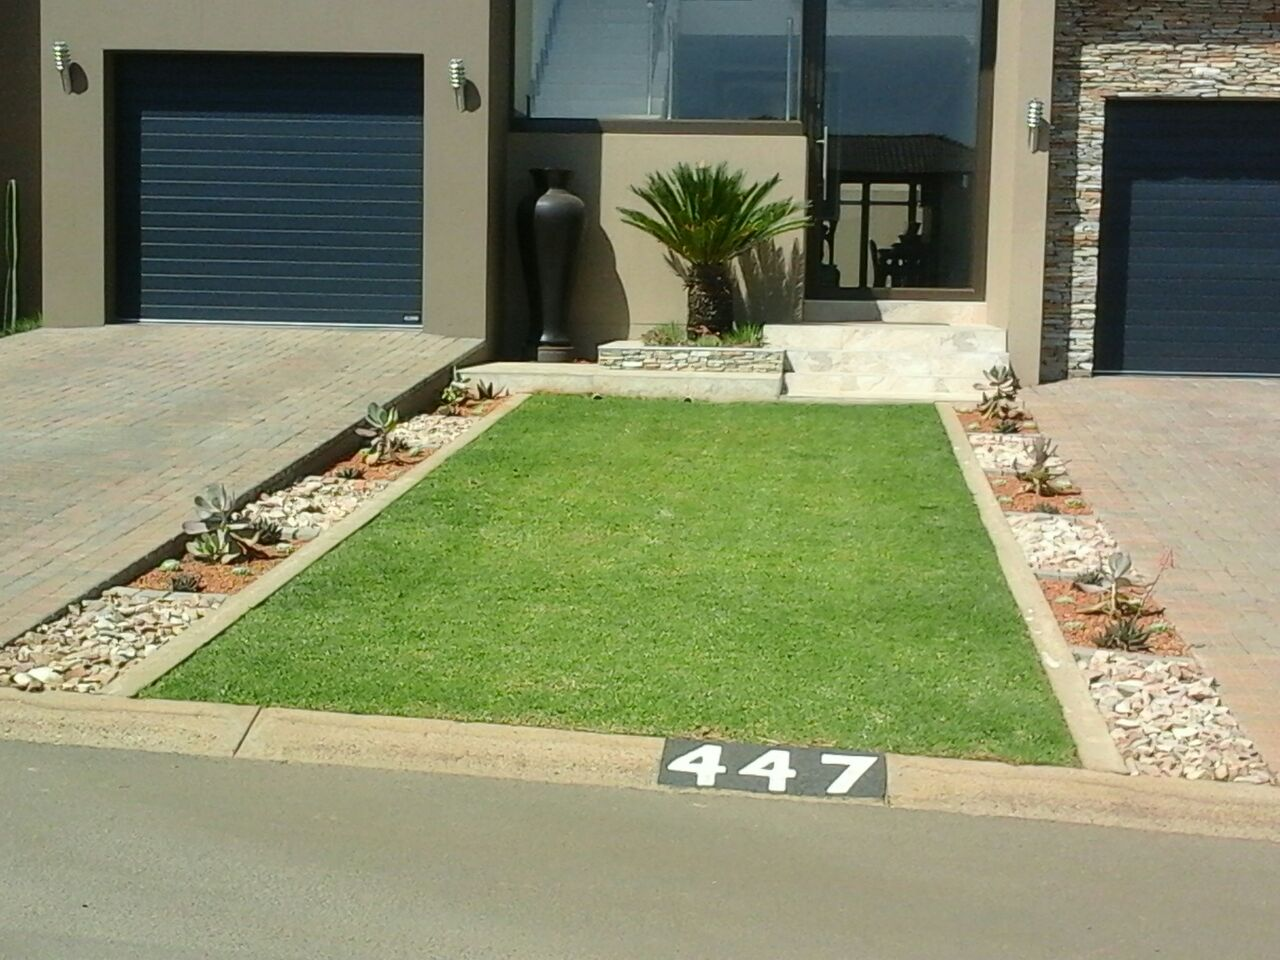 TOP QUALITY INSTANT LAWN & LANDSCAPING @ BEST PRICES.